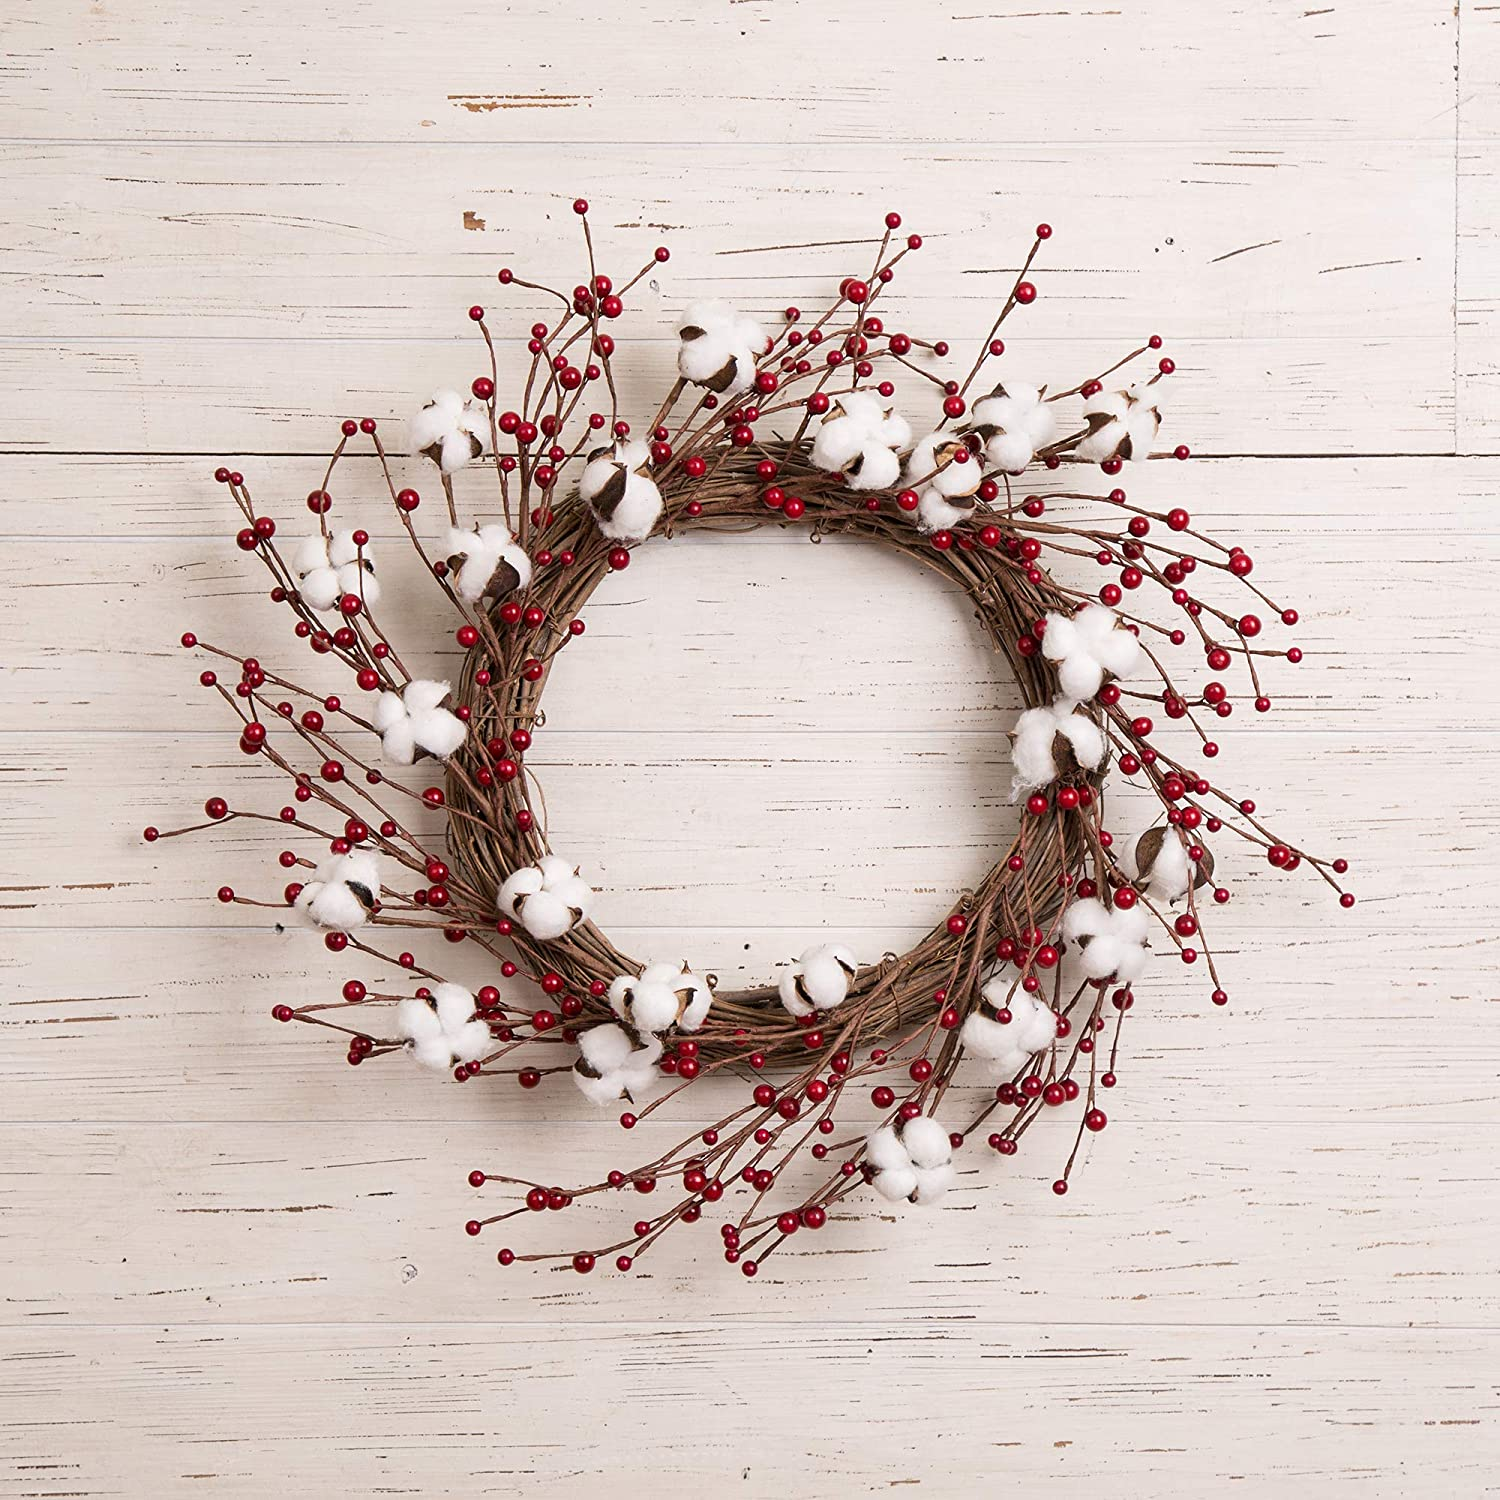 Amazon Com Glitzhome Artificial Cotton Boll Wreath Fall Wreaths For Front Door Indoor Wall Decor 22 Inch Decorative Harvest Garland With Berries Home Kitchen